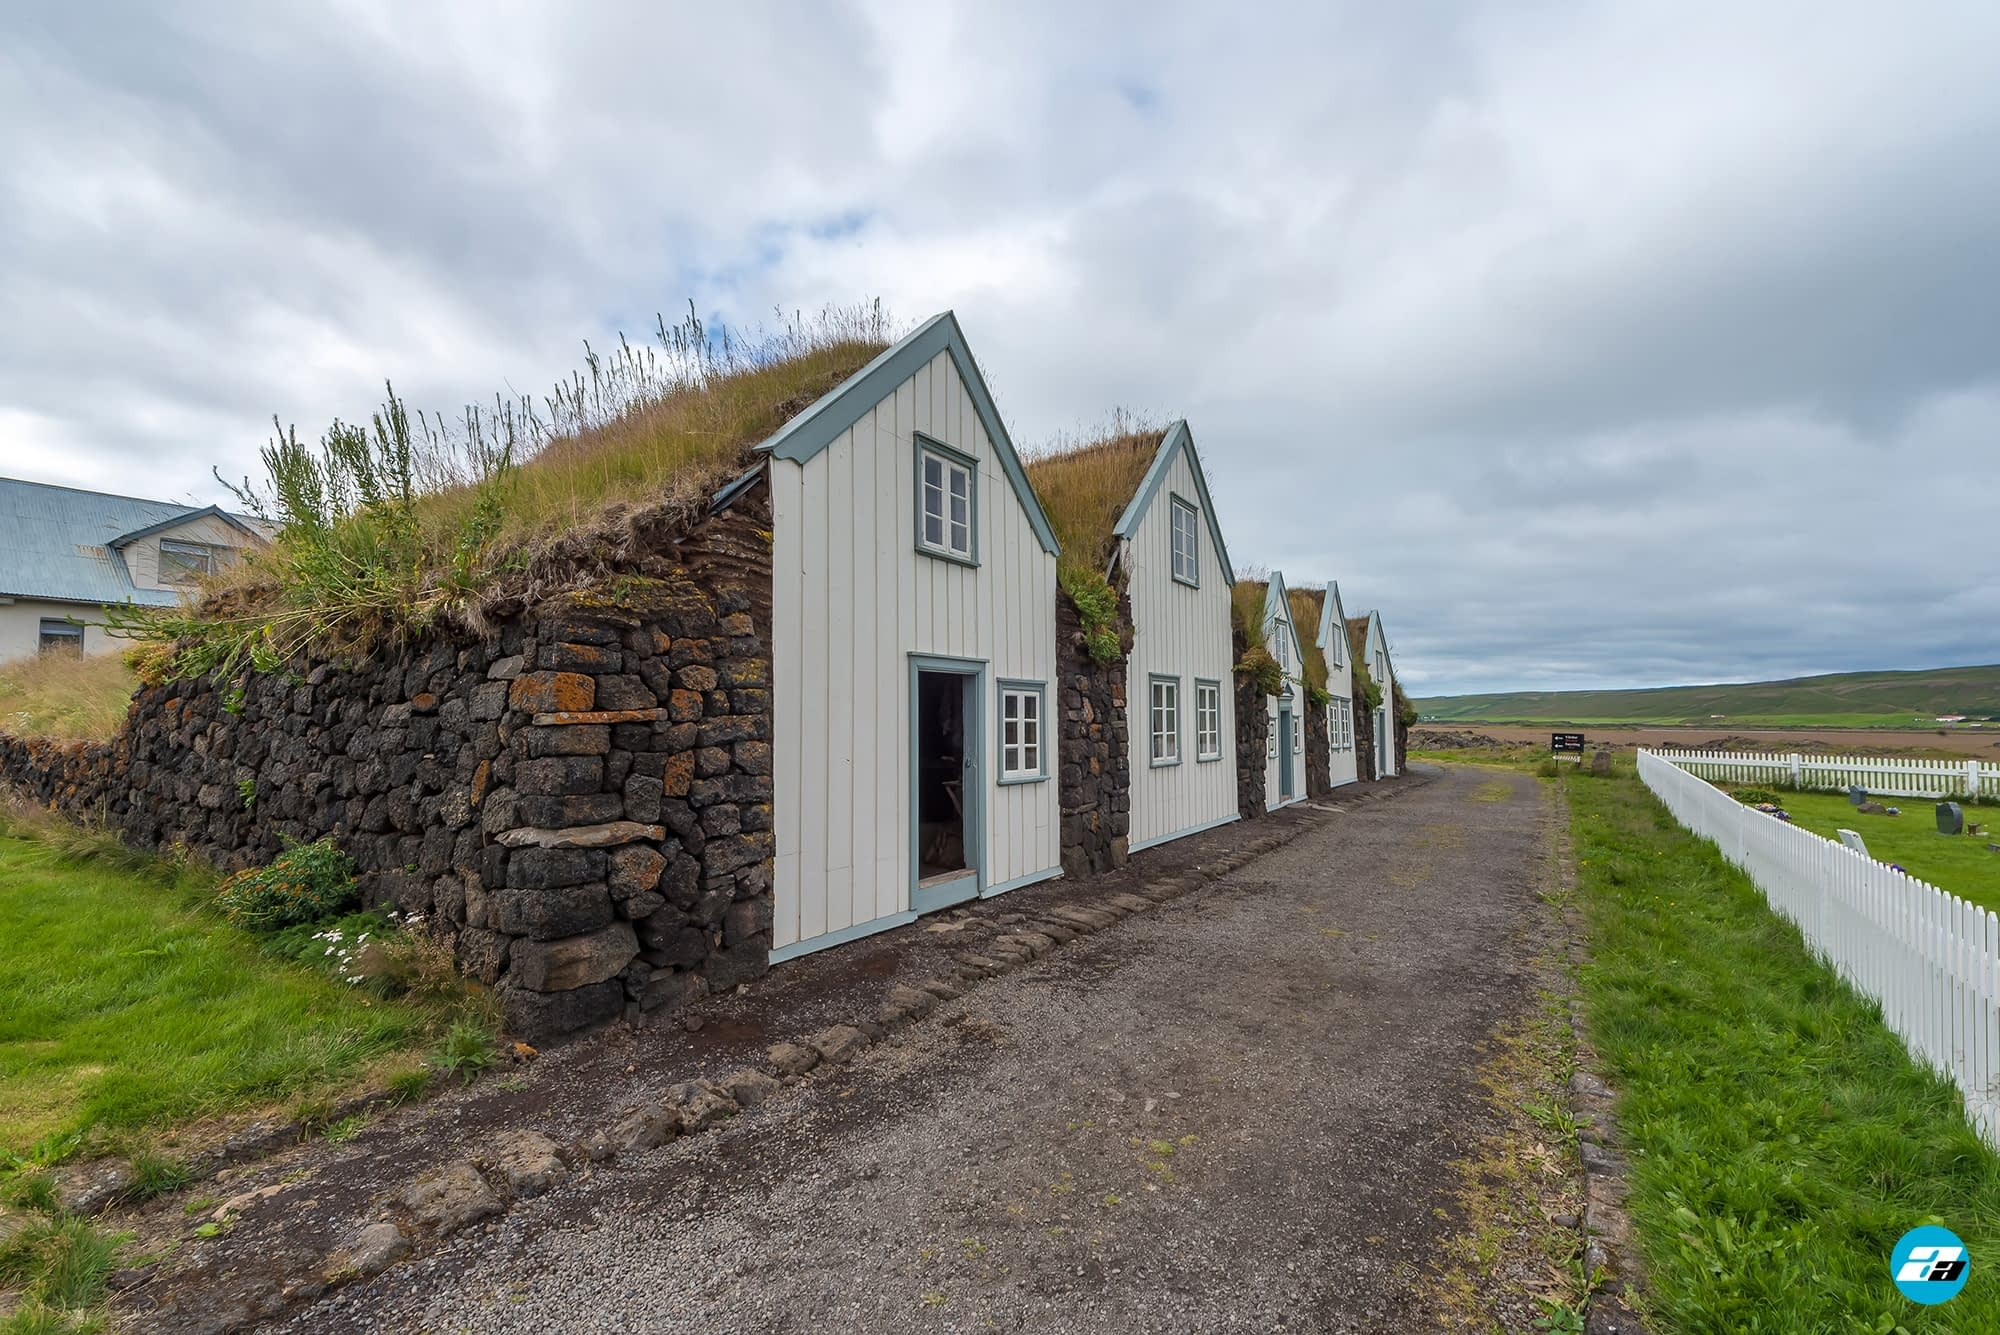 Iceland Travel, Ring Road, Turf Houses